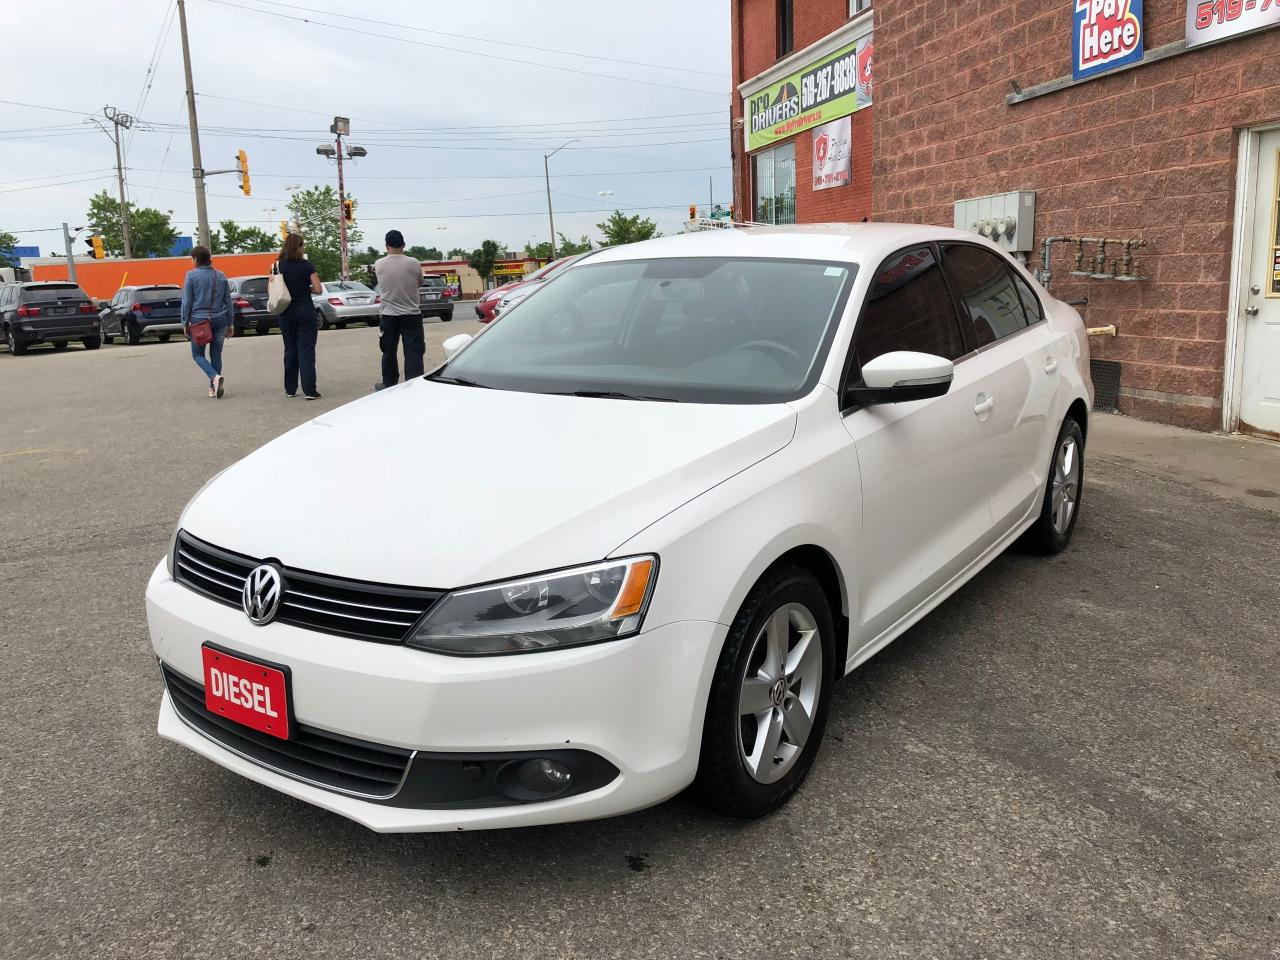 view carfinder lot for copart tdi volkswagen salvage sale il certificate in north chicago auctions blue left jetta on auto online en